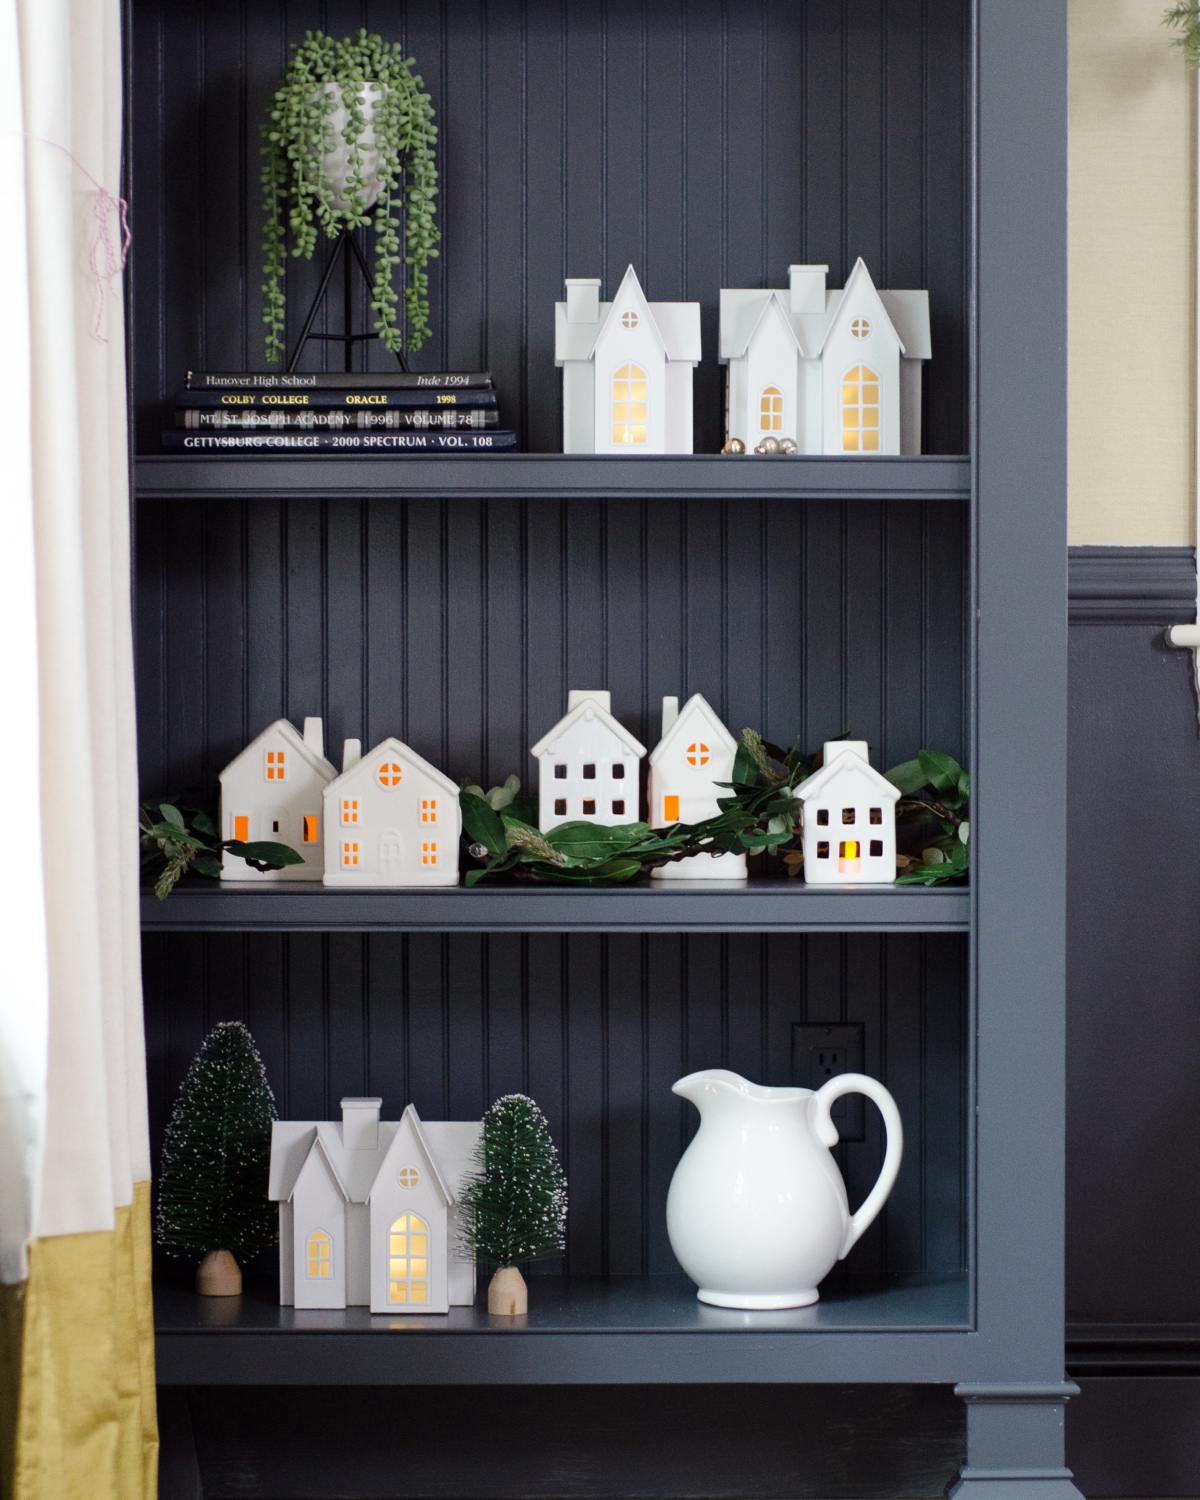 White Christmas houses, Christmas bookshelf styling